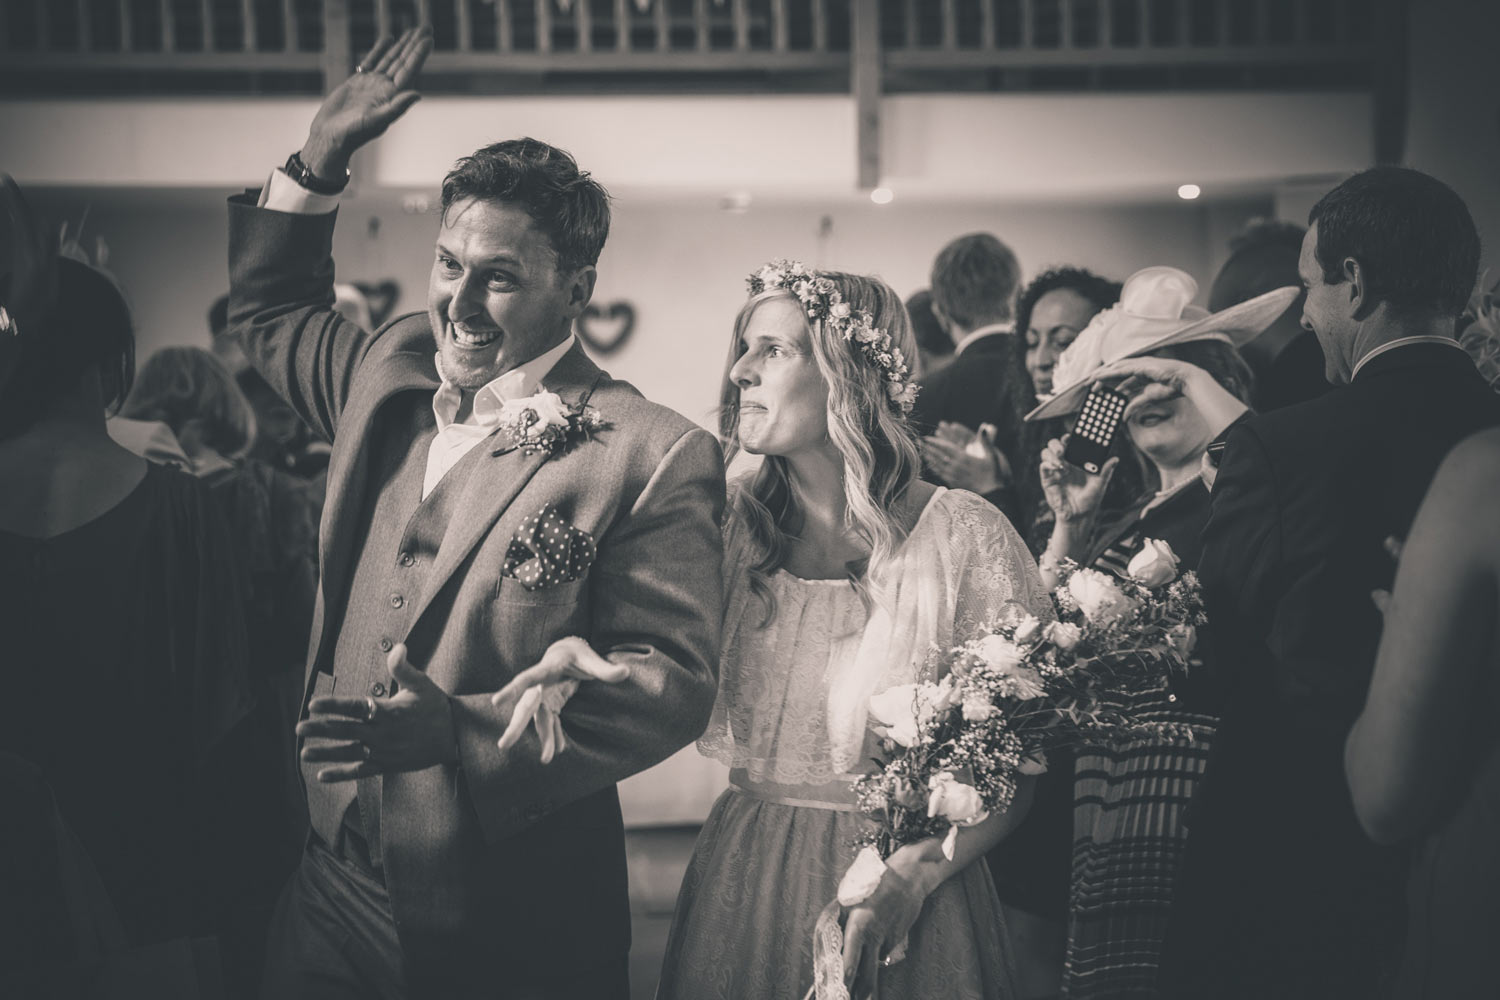 Walking down the aisle after wedding ceremony at the Ashes Leek